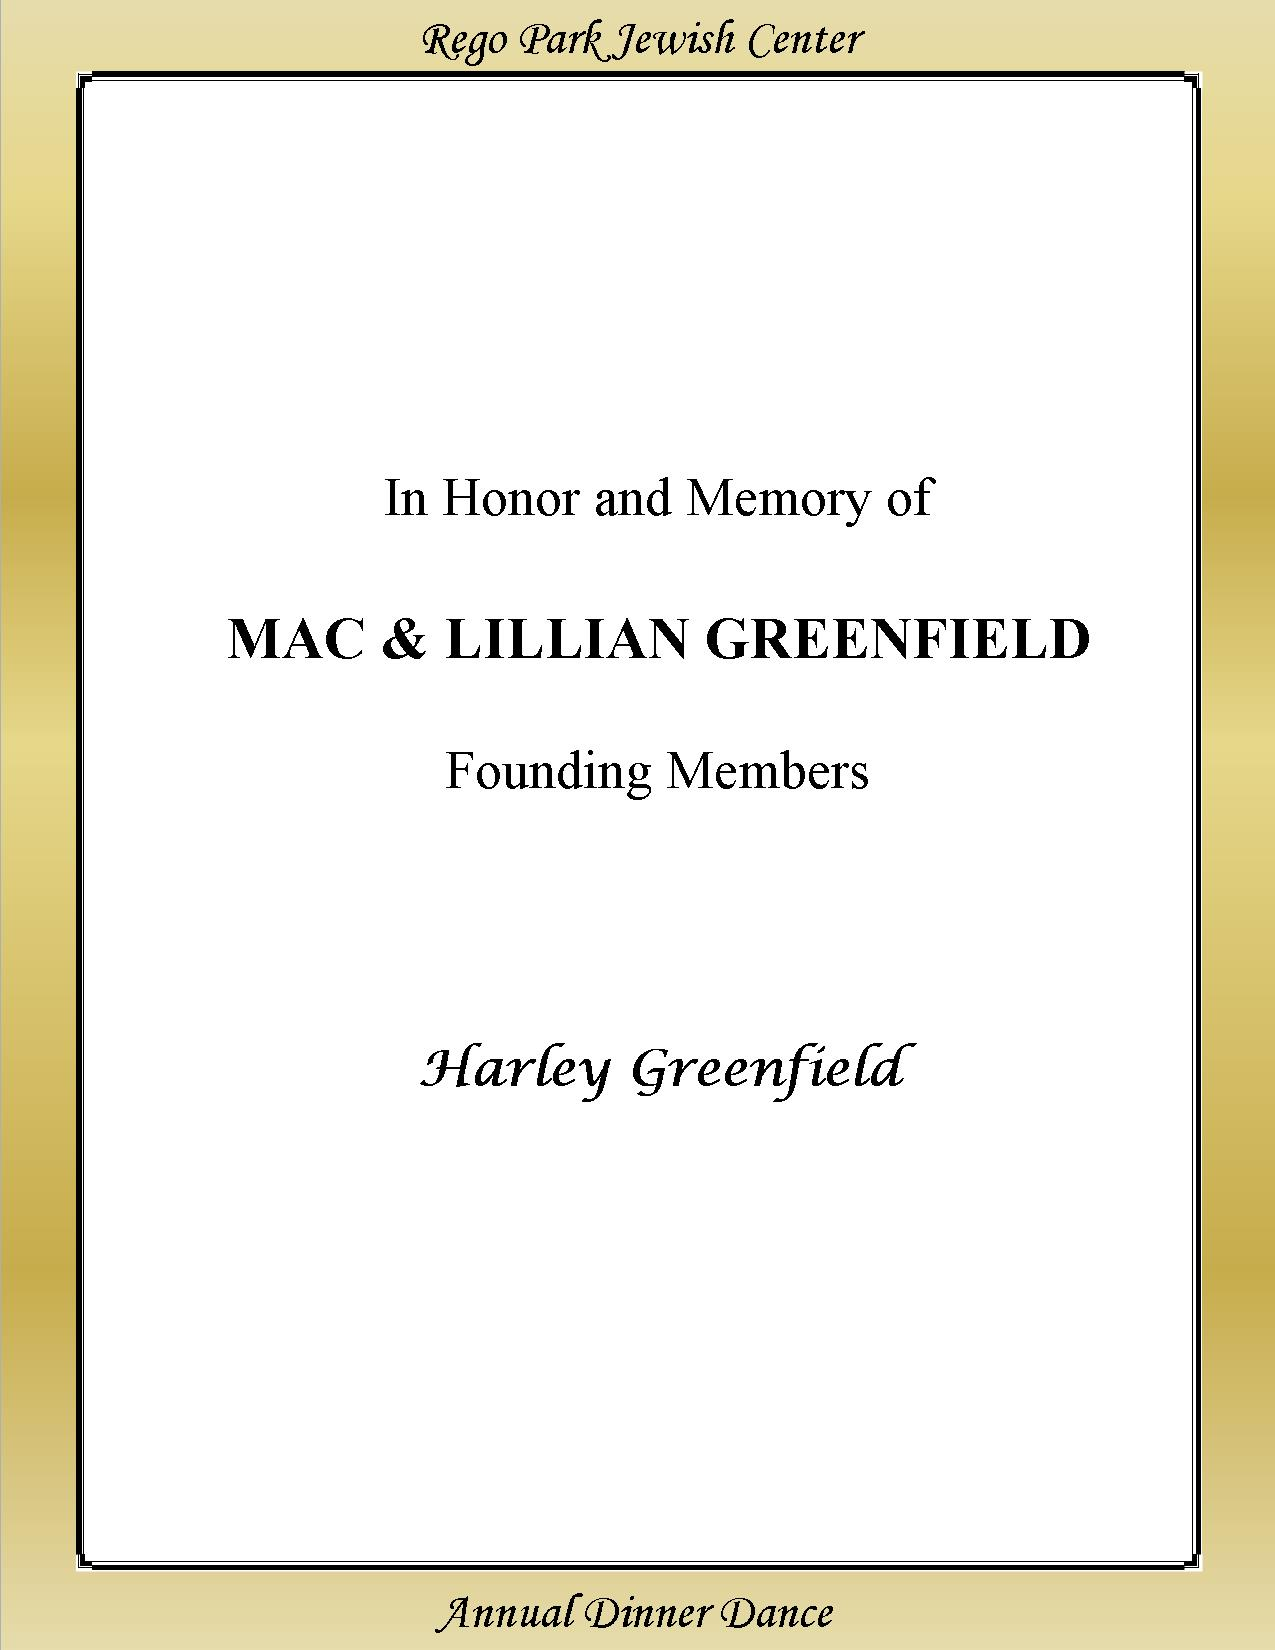 Gold Greenfield Page 18 - Copy.jpg